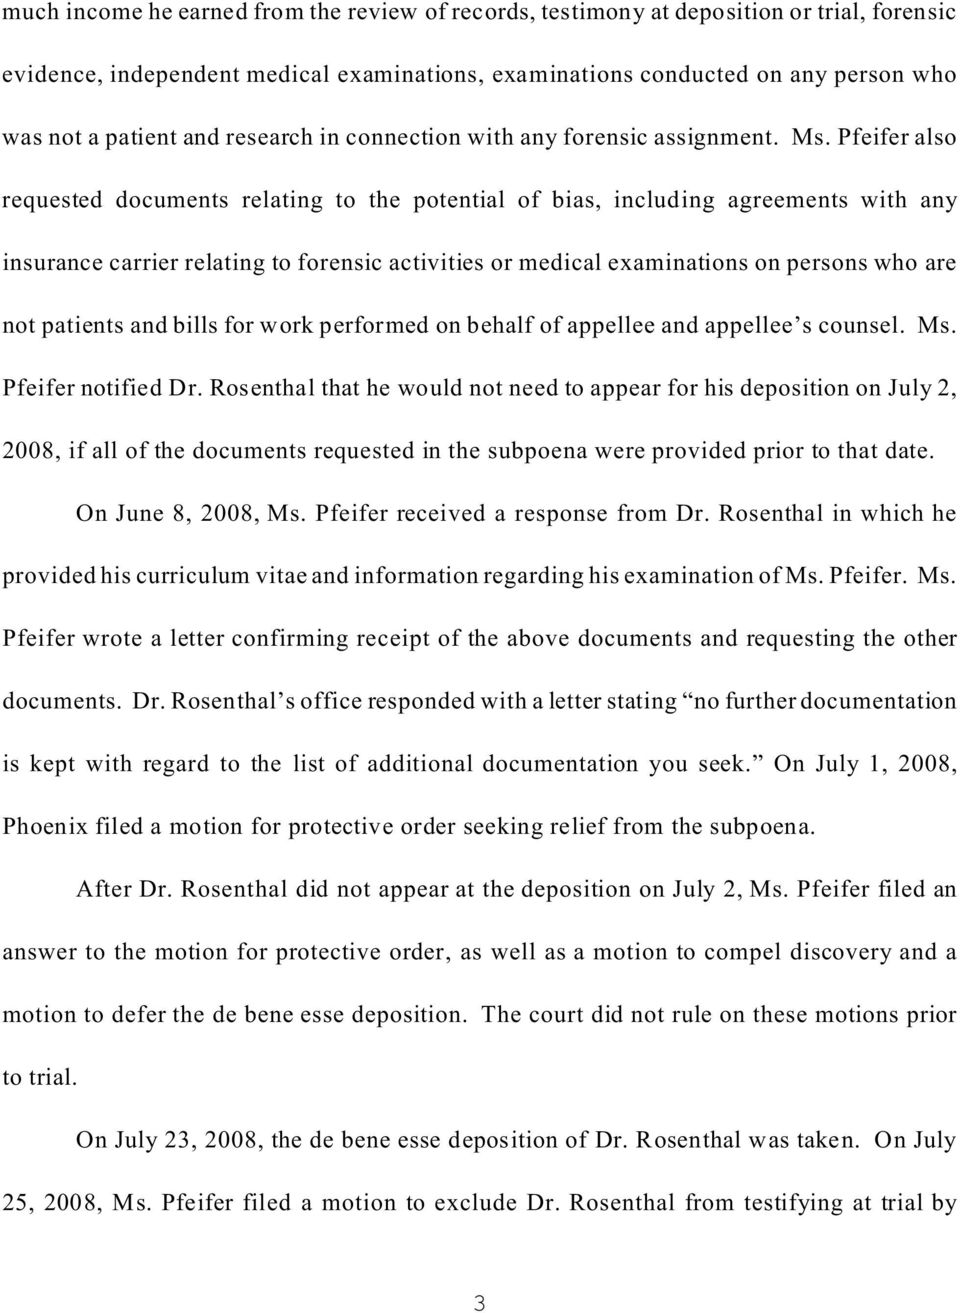 Pfeifer also requested documents relating to the potential of bias, including agreements with any insurance carrier relating to forensic activities or medical examinations on persons who are not